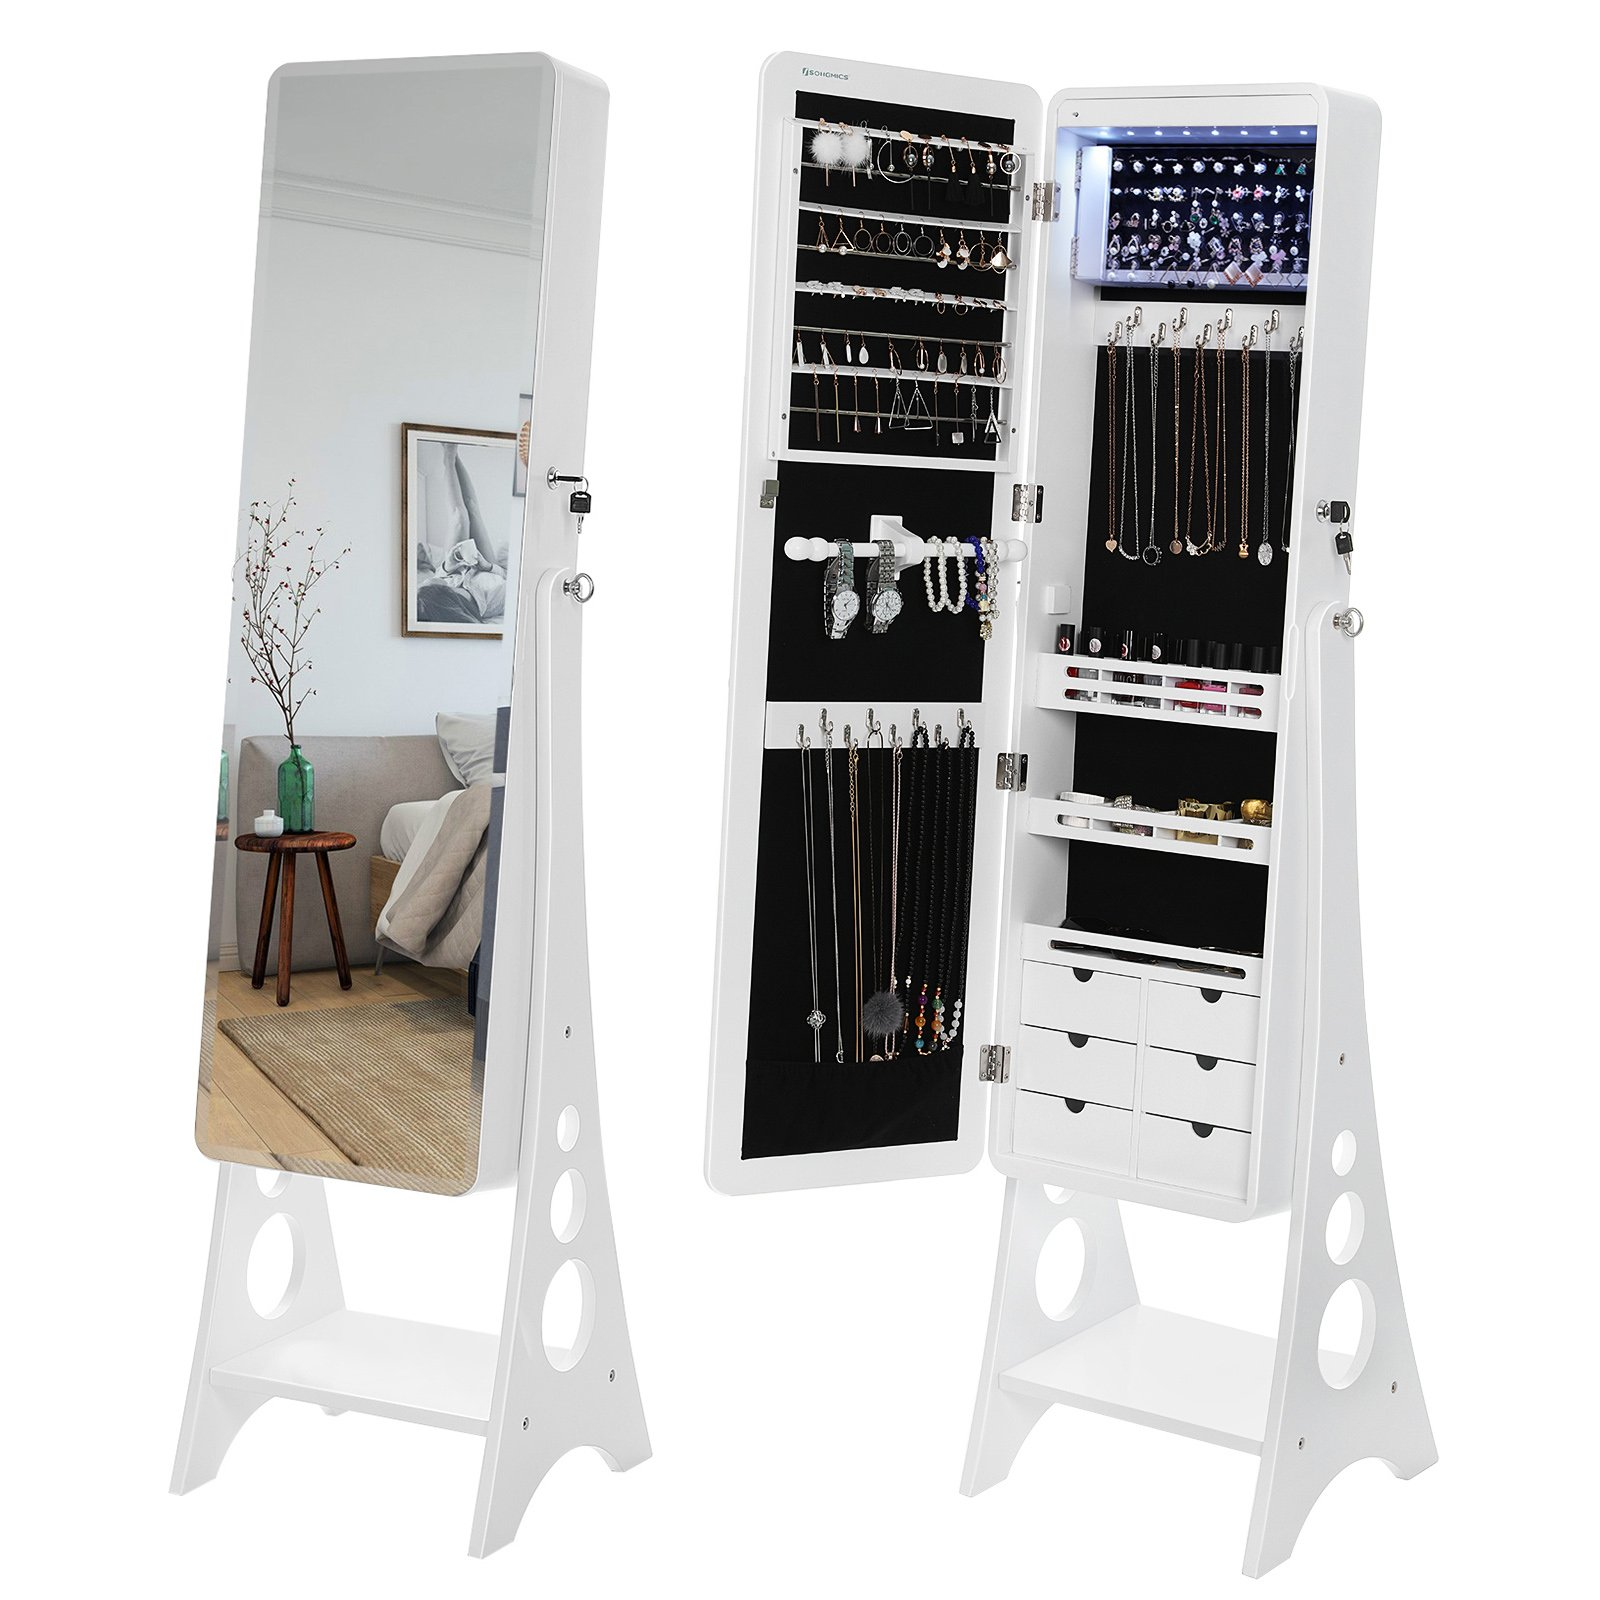 SONGMICS 8 LEDs Jewelry Cabinet with Bevel Edge Mirror Lockable Standing Armoire Organizer with 6 Drawers and Earring Board White UJJC89W